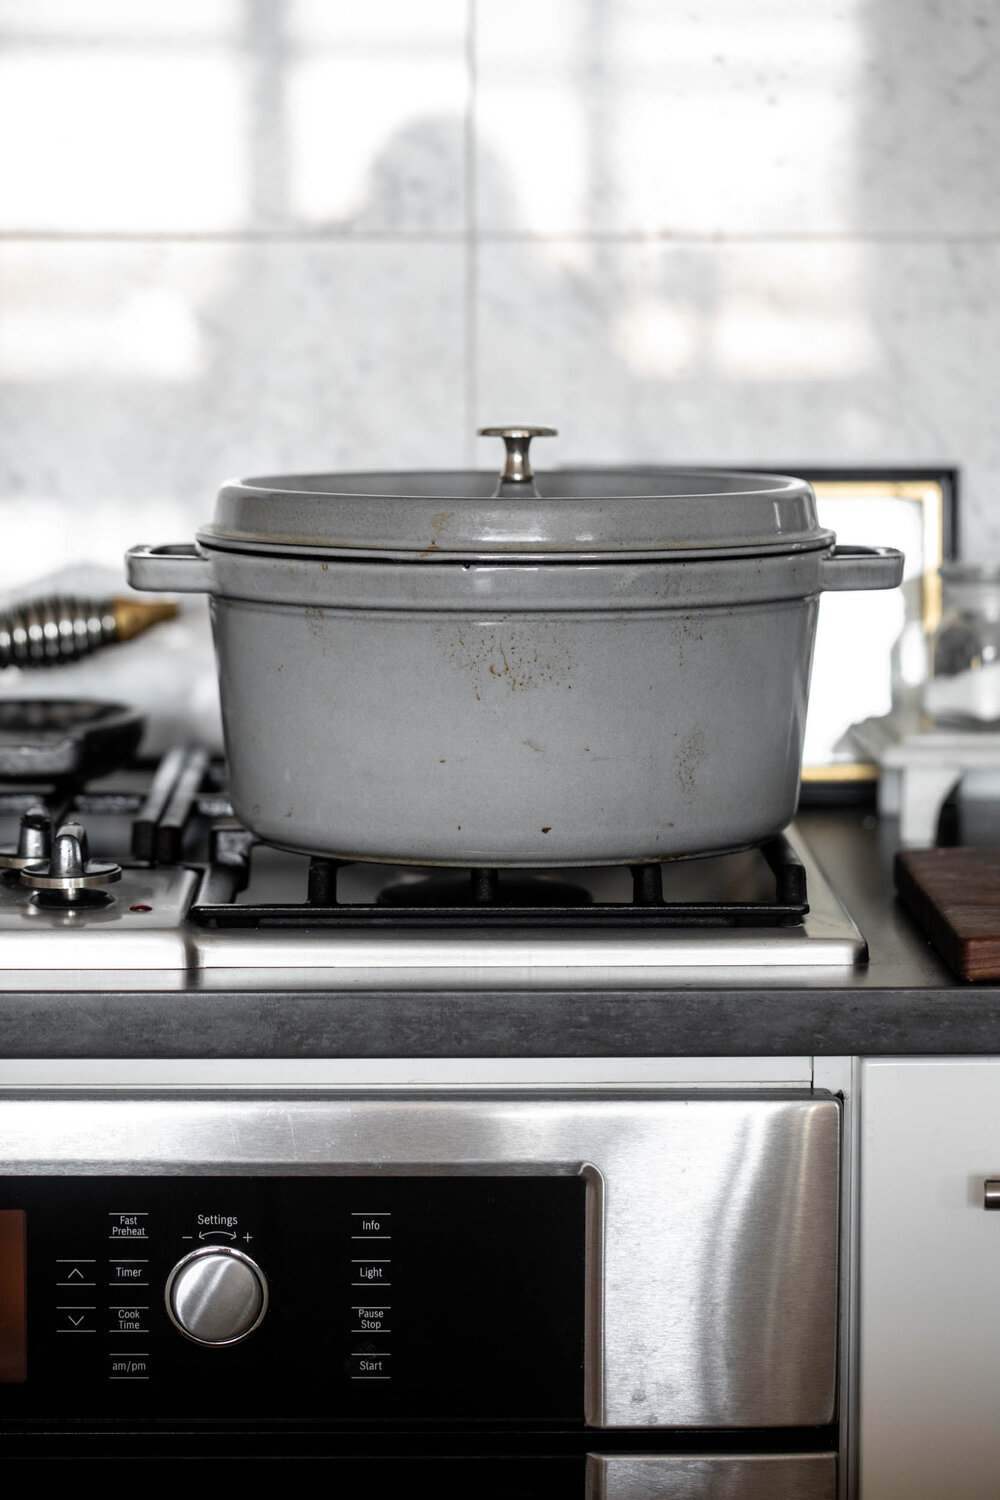 The Top 10 Essential Kitchen Tools Every Cook Should Own-26.jpg